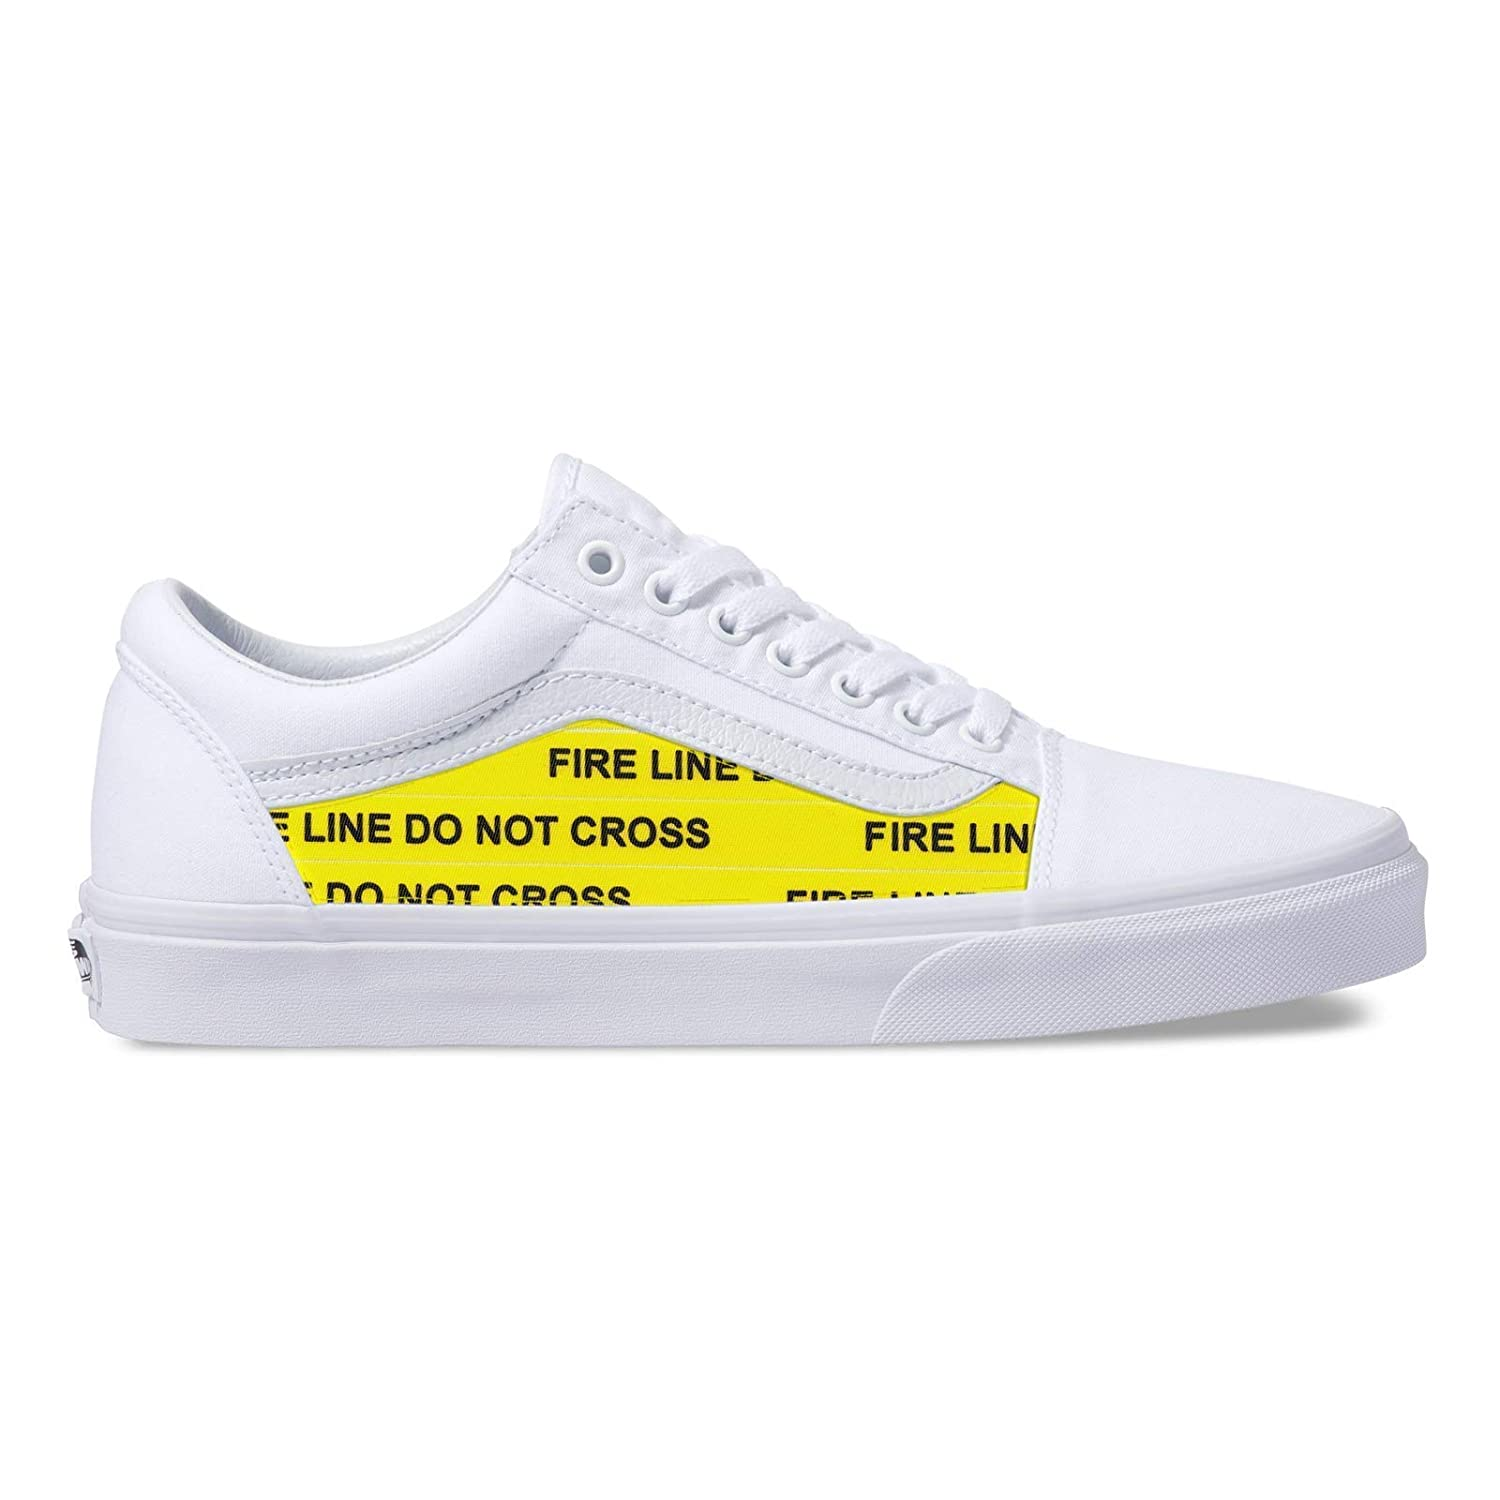 815ae924ae Amazon.com: Vans White Old Skool x OFF White Custom Handmade Uni-Sex Shoes  By Patch Collection: Handmade